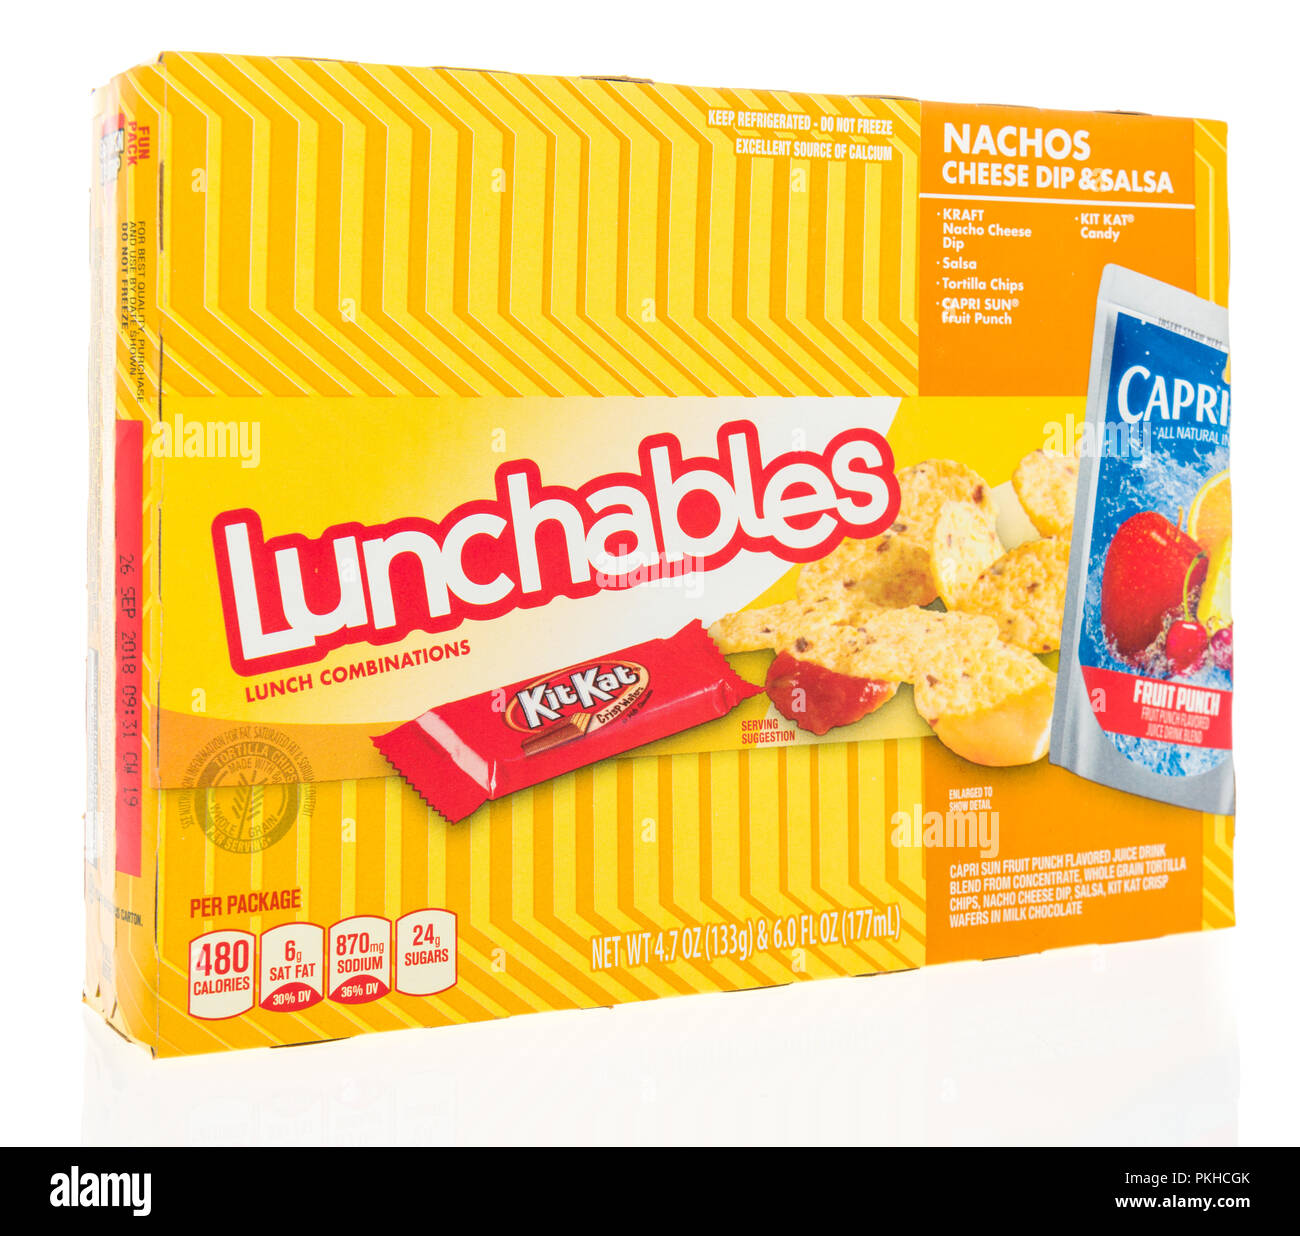 Winneconne, WI - 9 September 2018: A package of Lunchables with Kraft cheese, Capri Sun drink and a KitKat candy bar on an isolated background - Stock Image